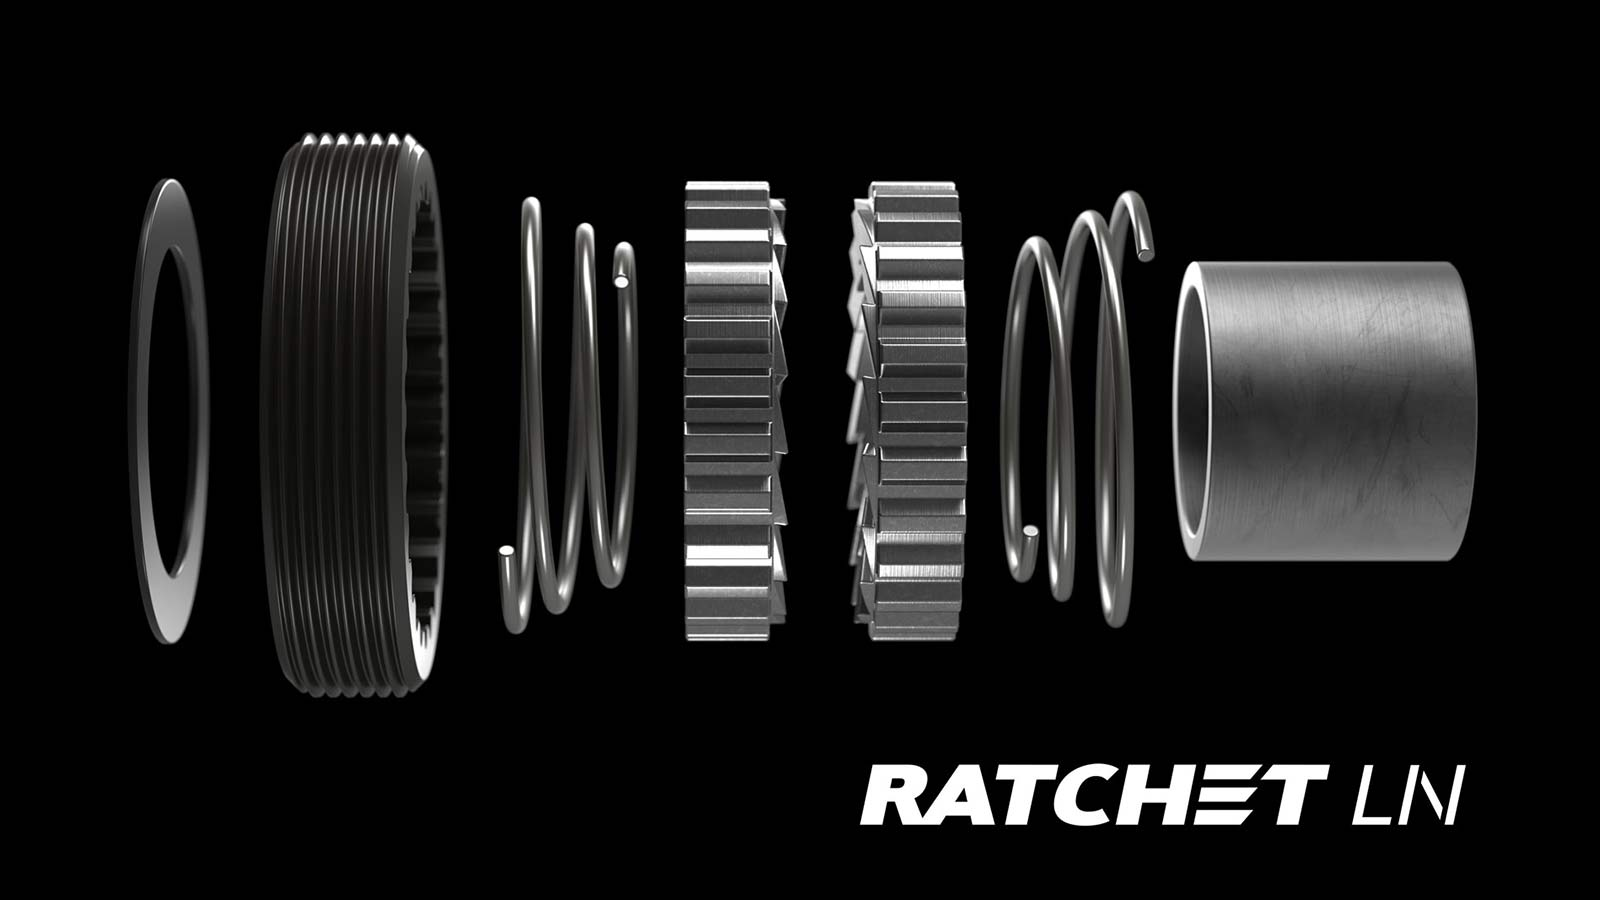 DT Swiss Ratchet LN hub upgrade kit, from 3-pawls to Star Ratchet,components